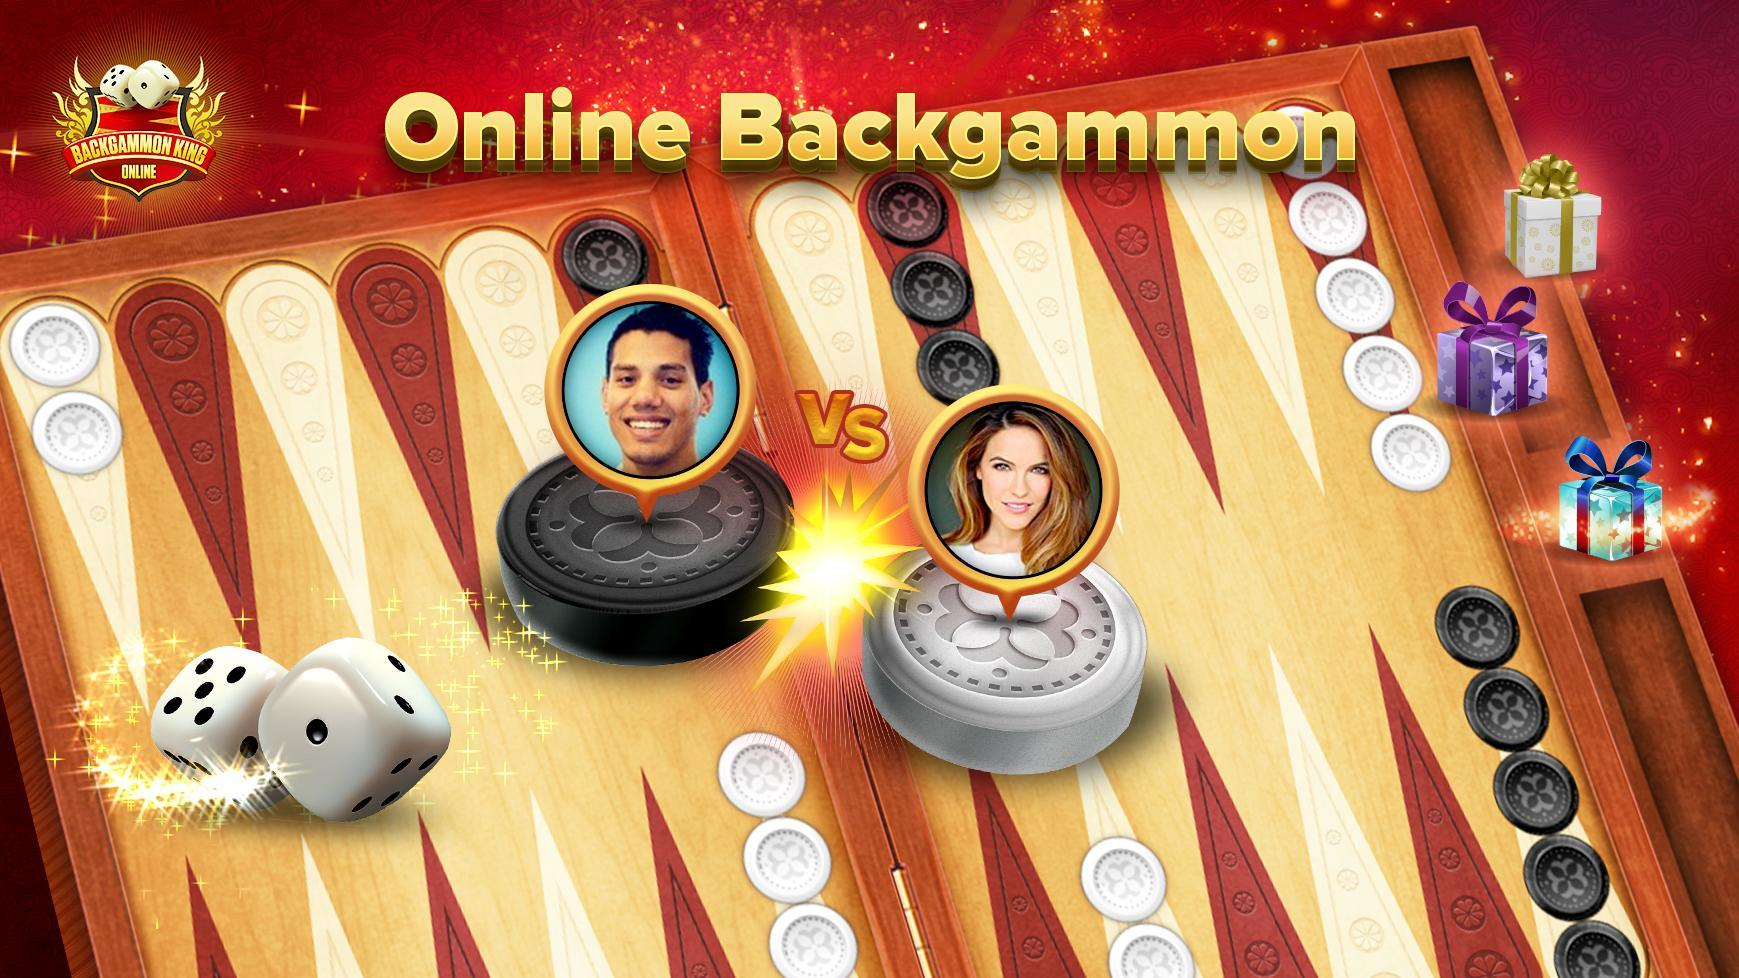 Backgammon King Online 🎲 Free Social Board Game 2.10.5 Screenshot 9